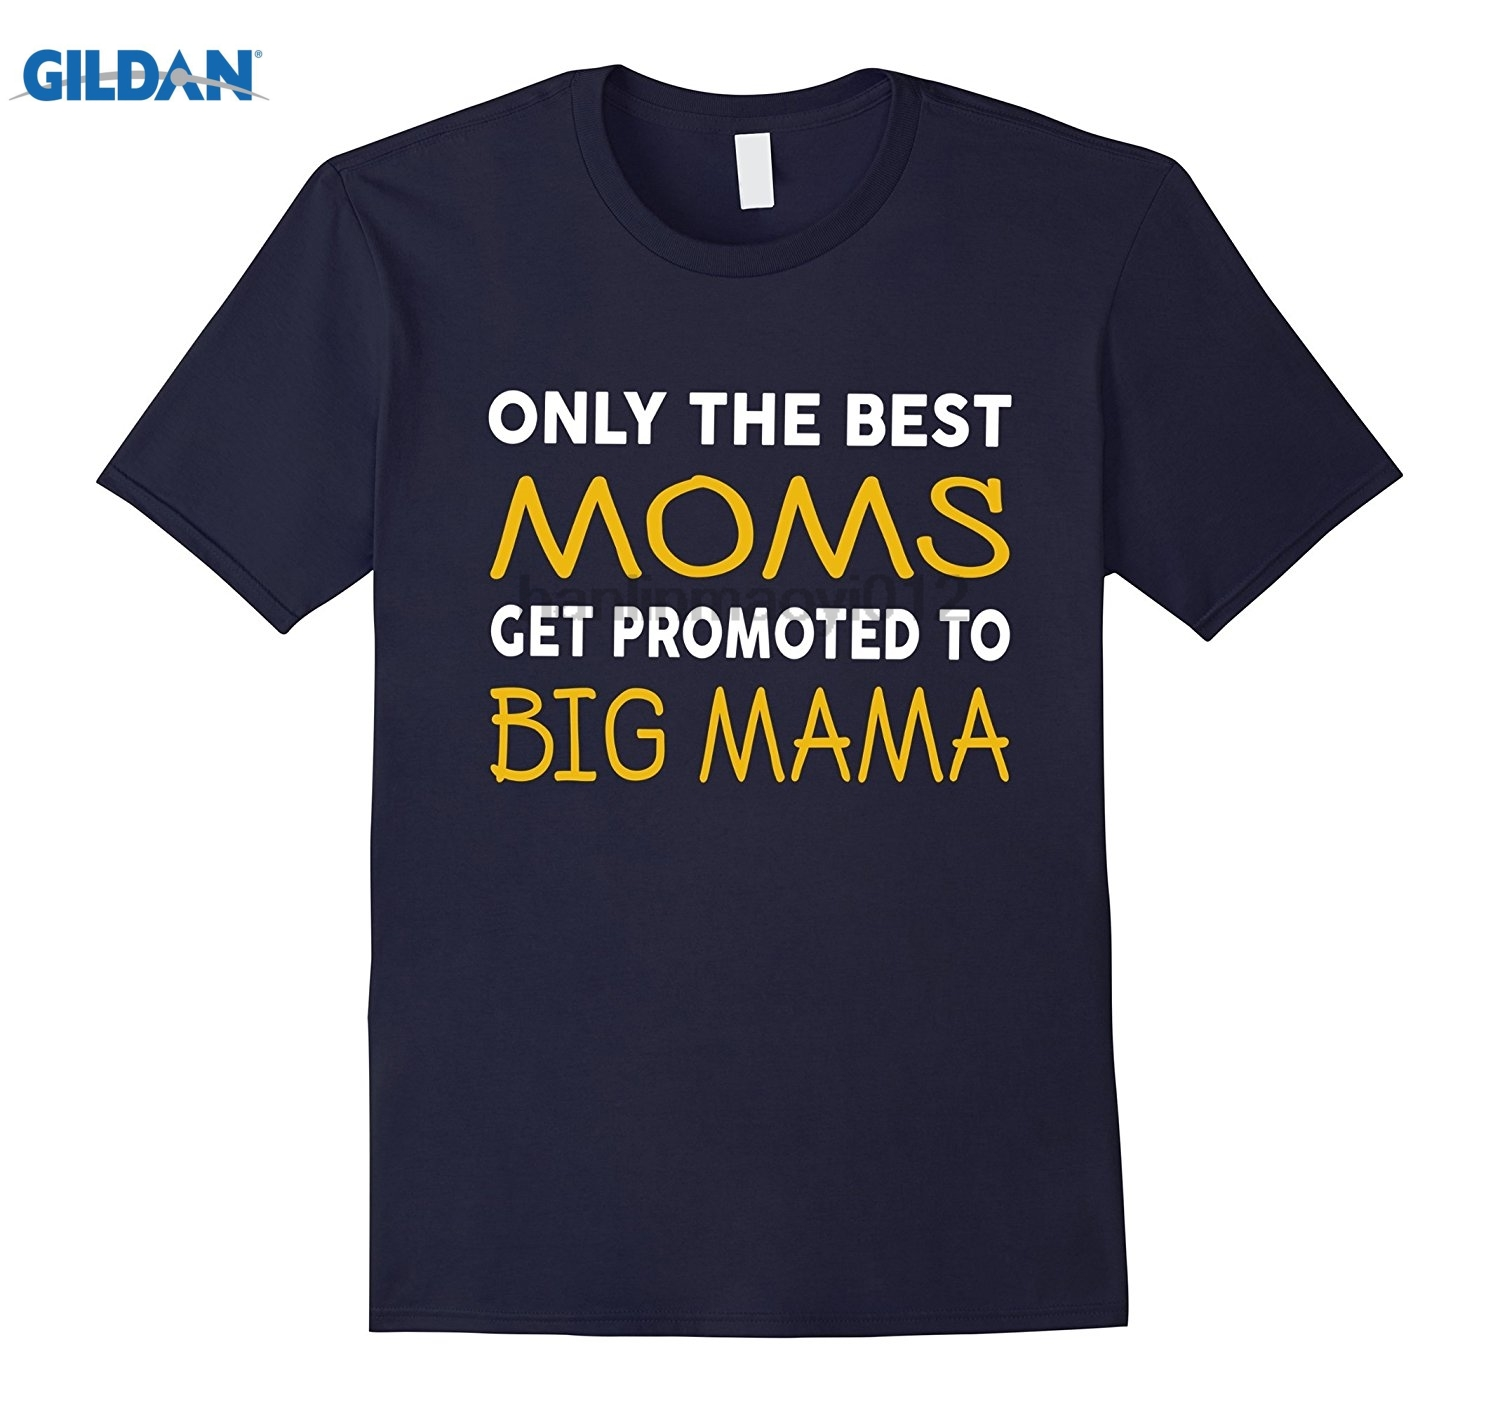 GILDAN Best Moms Get Promoted To Big Mama - Grandma T-Shirts Dress female T-shirt